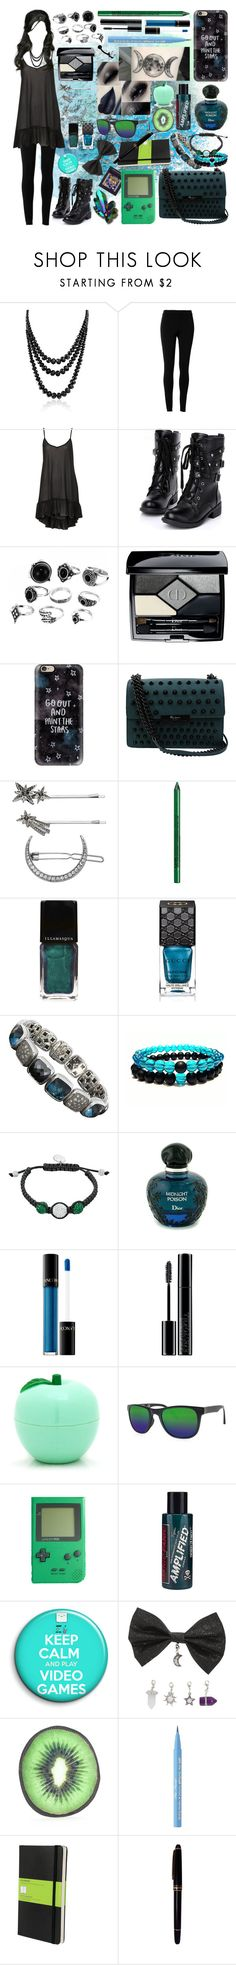 """""""they're green with envy that she's blue as the sea"""" by ashleythesm ❤ liked on Polyvore featuring Tokyo Rose, Bling Jewelry, Max Studio, Christian Dior, Casetify, Foley + Corinna, Simply Vera, NYX, Illamasqua and Gucci"""